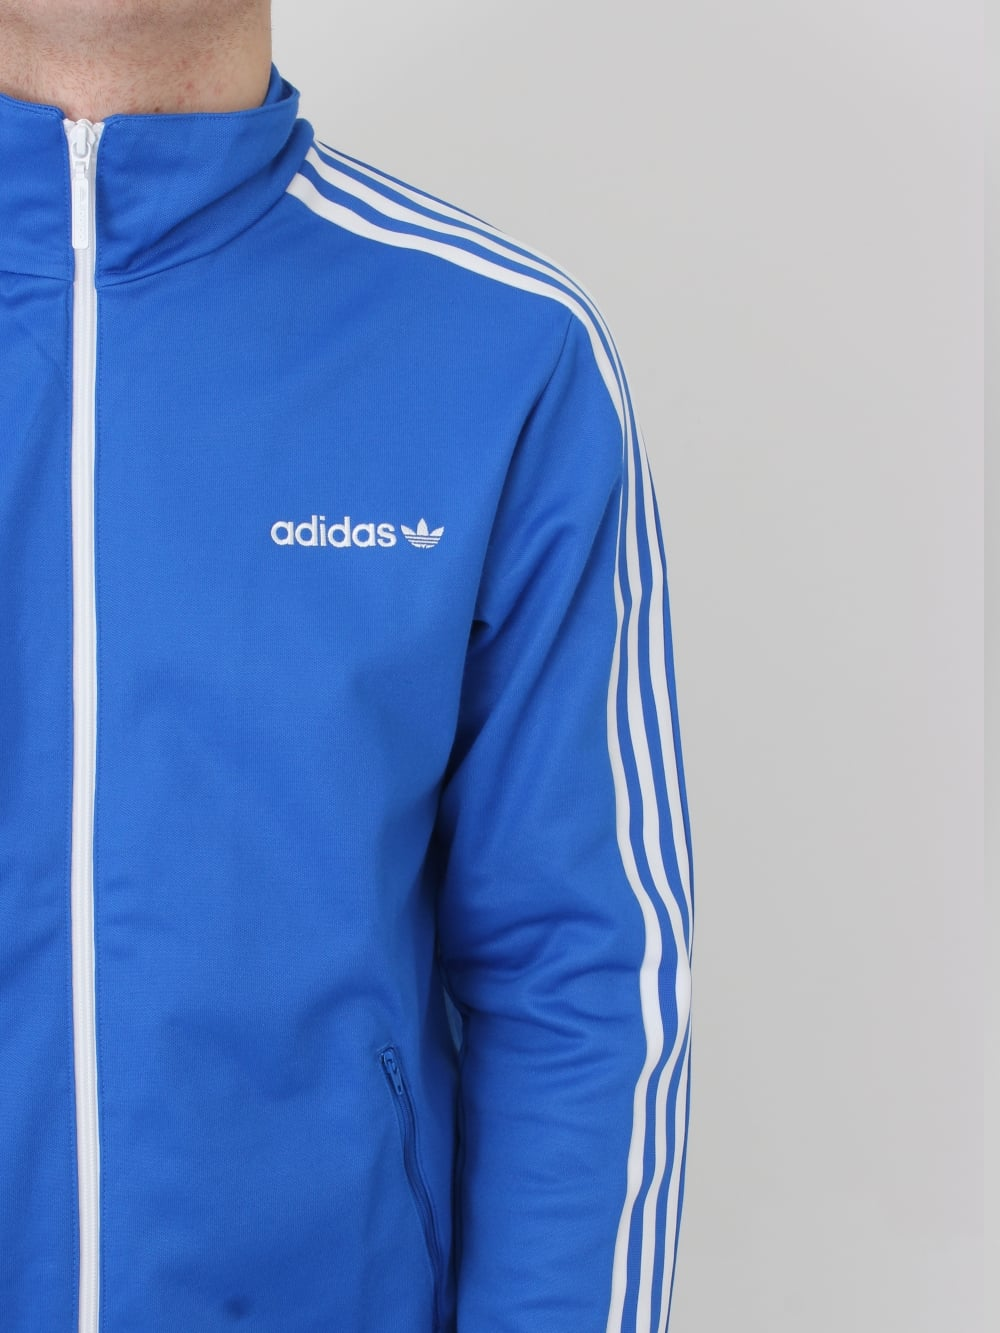 8dc477c64385b8 adidas BB Tracktop in Blue - Northern Threads